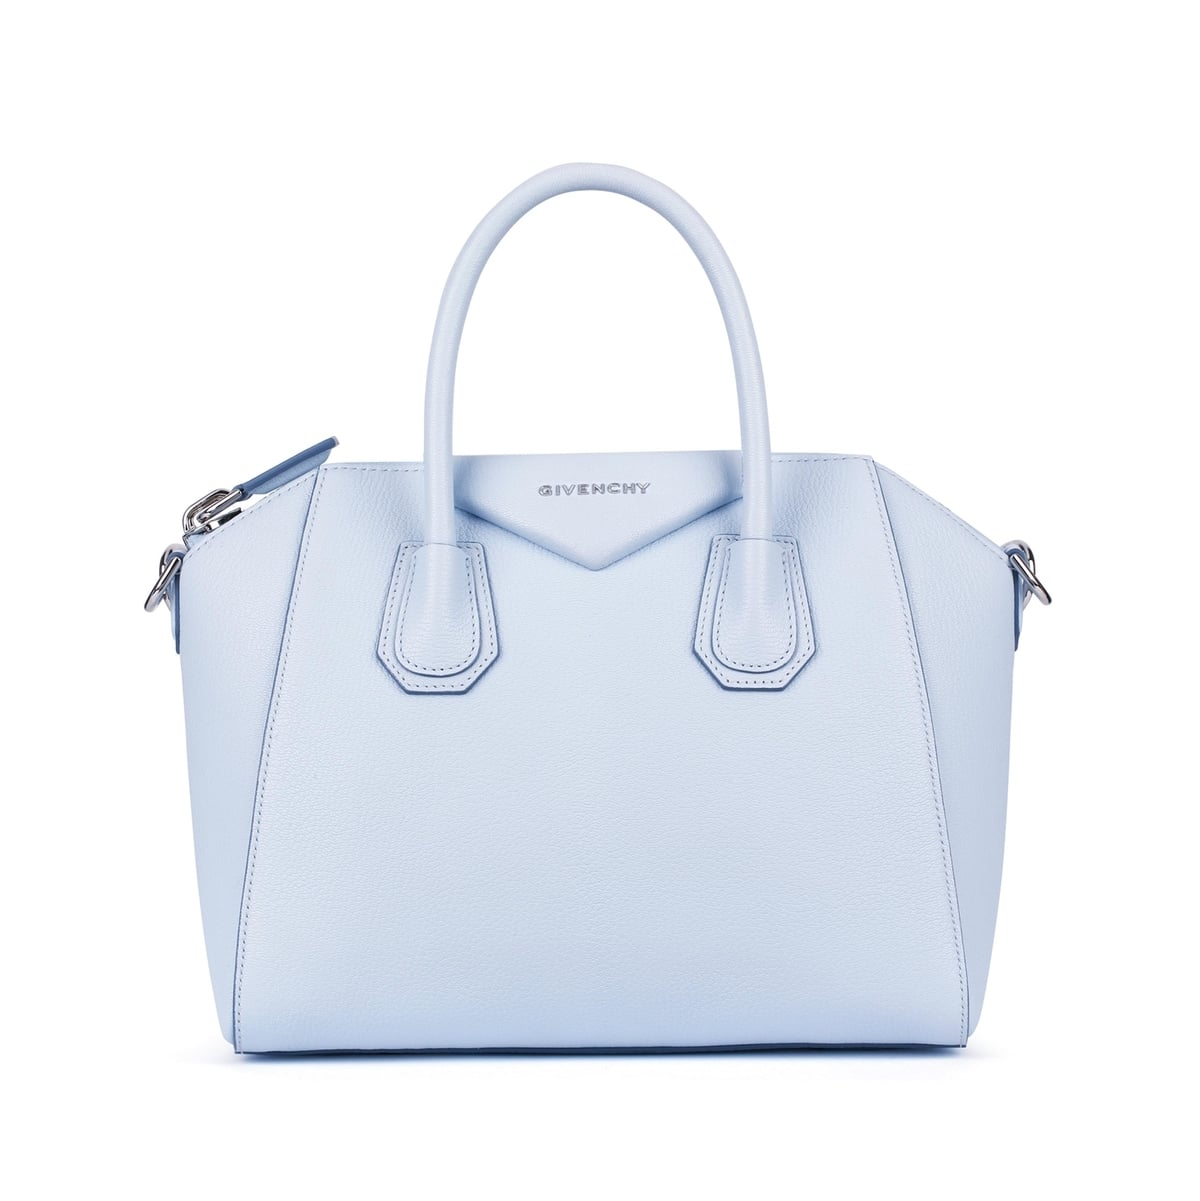 6aa785512b Givenchy Spring Summer 2016 Bag Collection